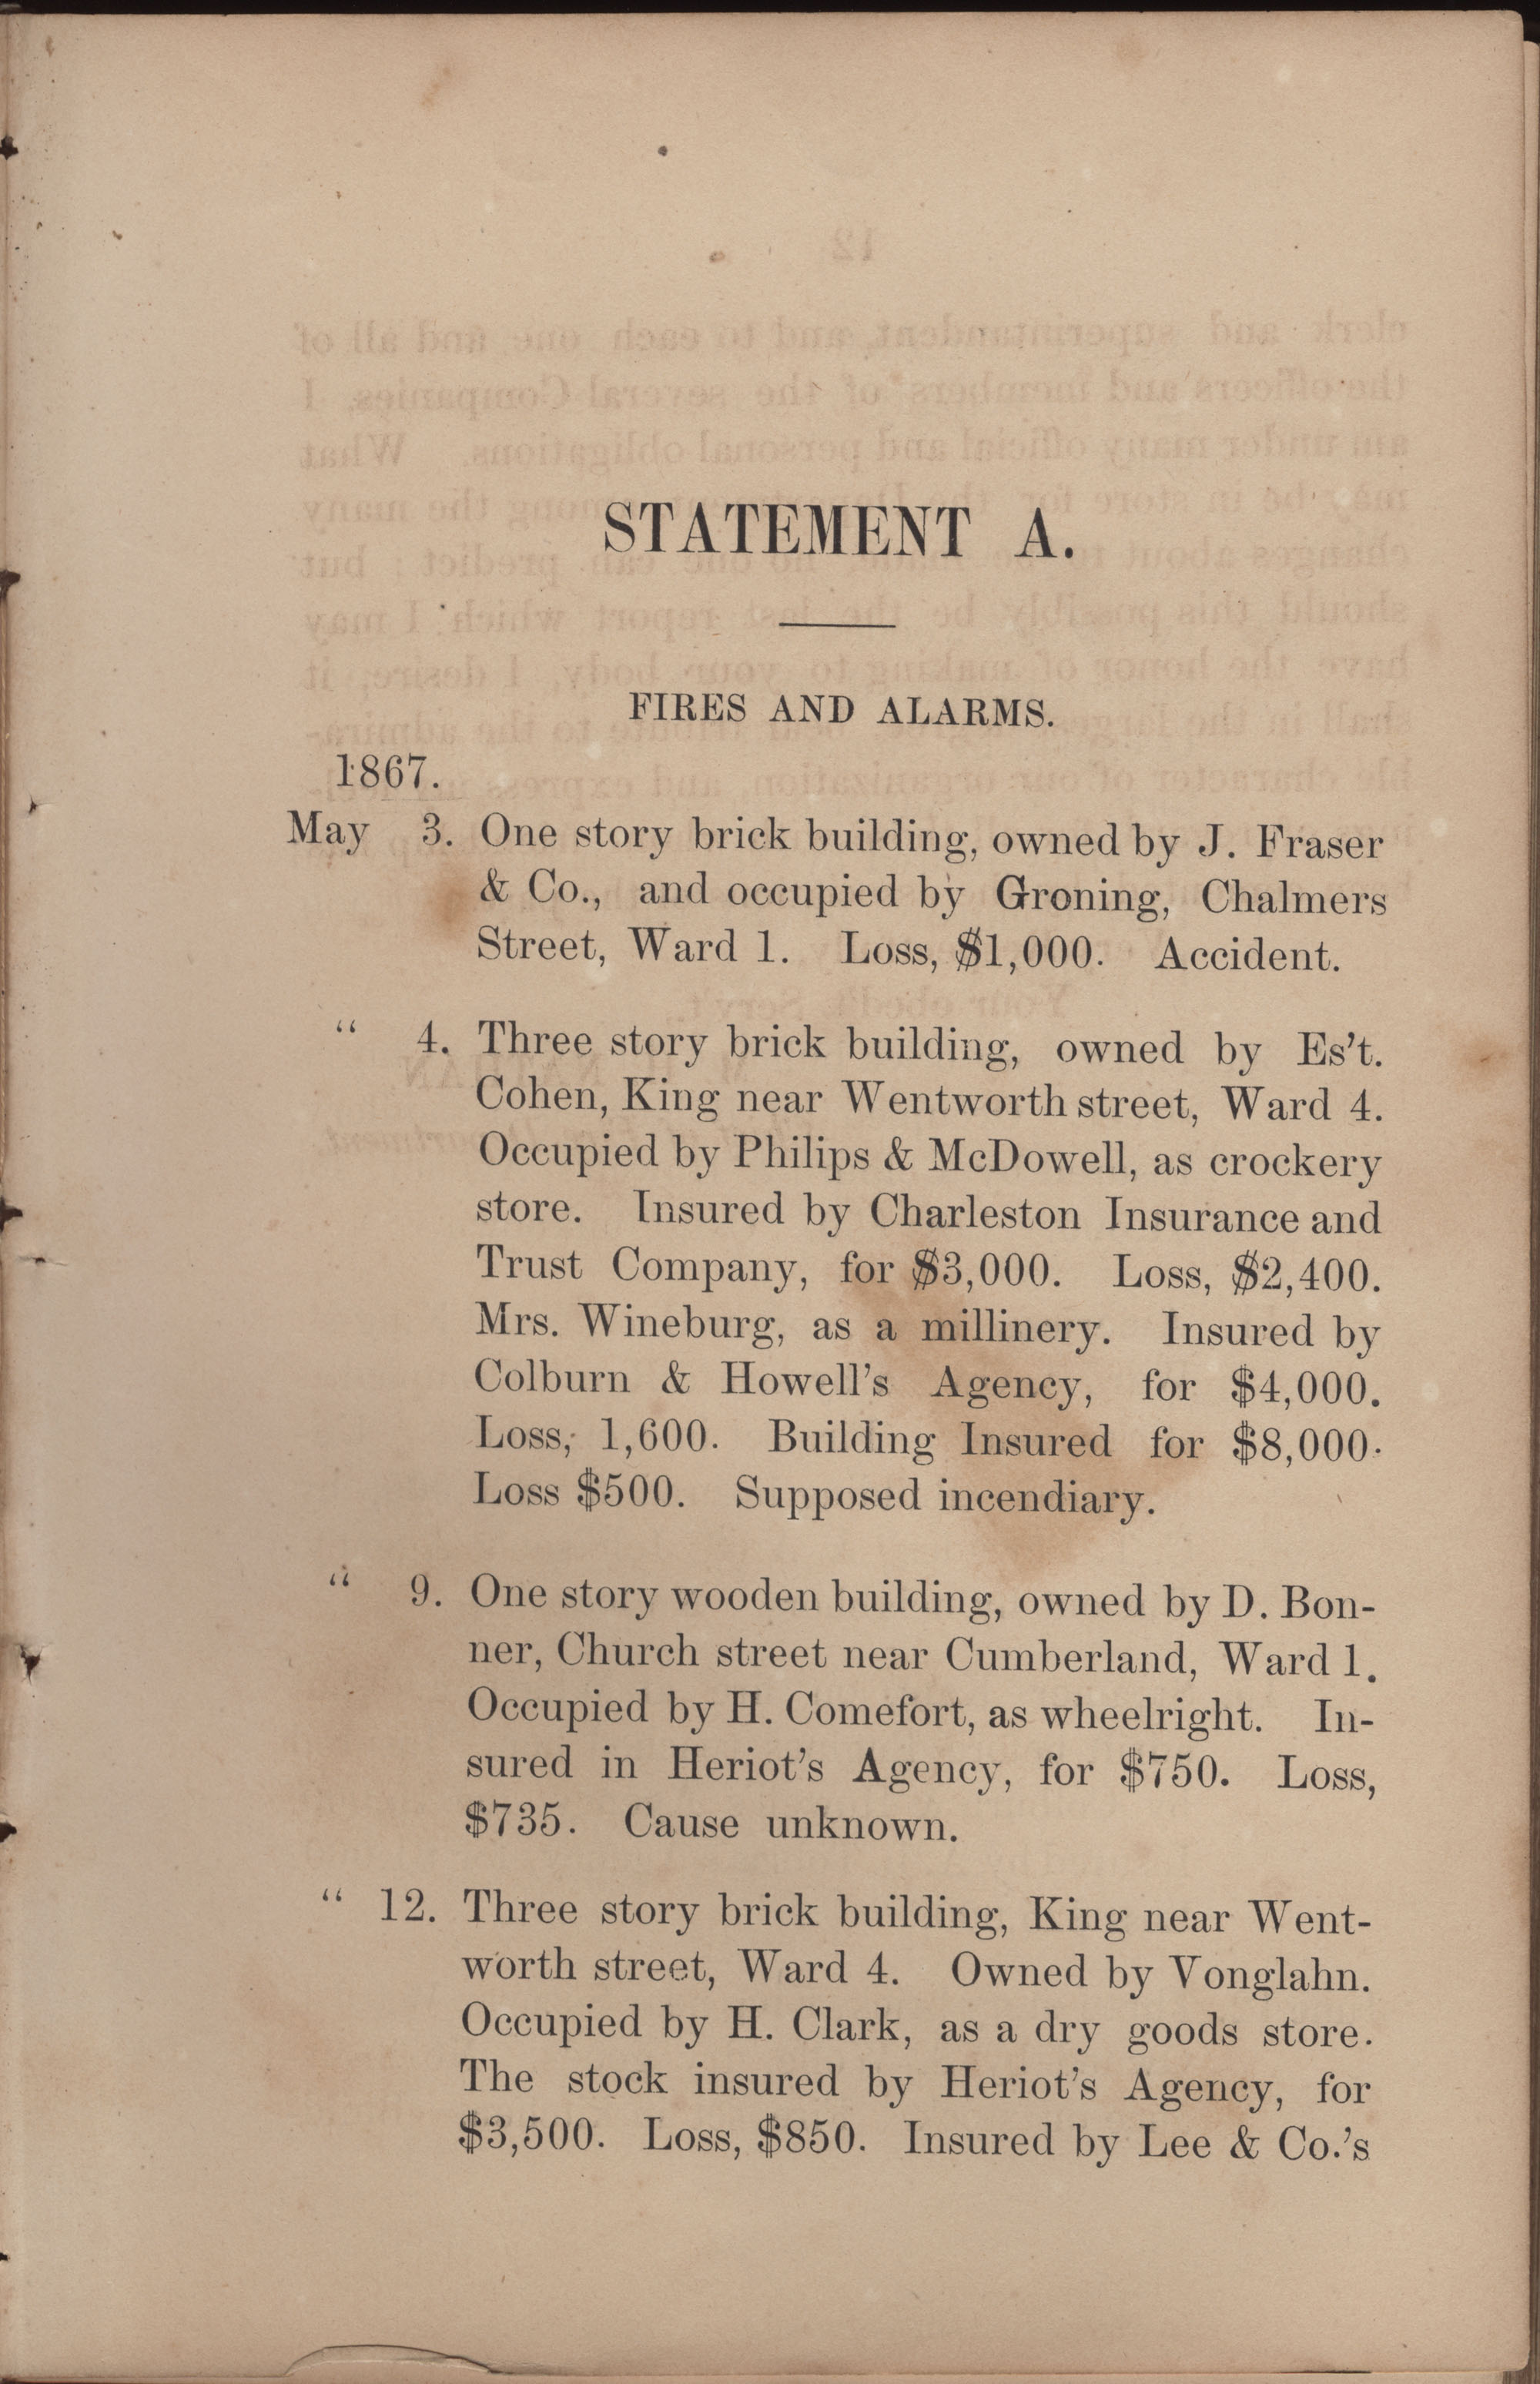 Annual Report of the Chief of the Fire Department of the City of Charleston, page 191